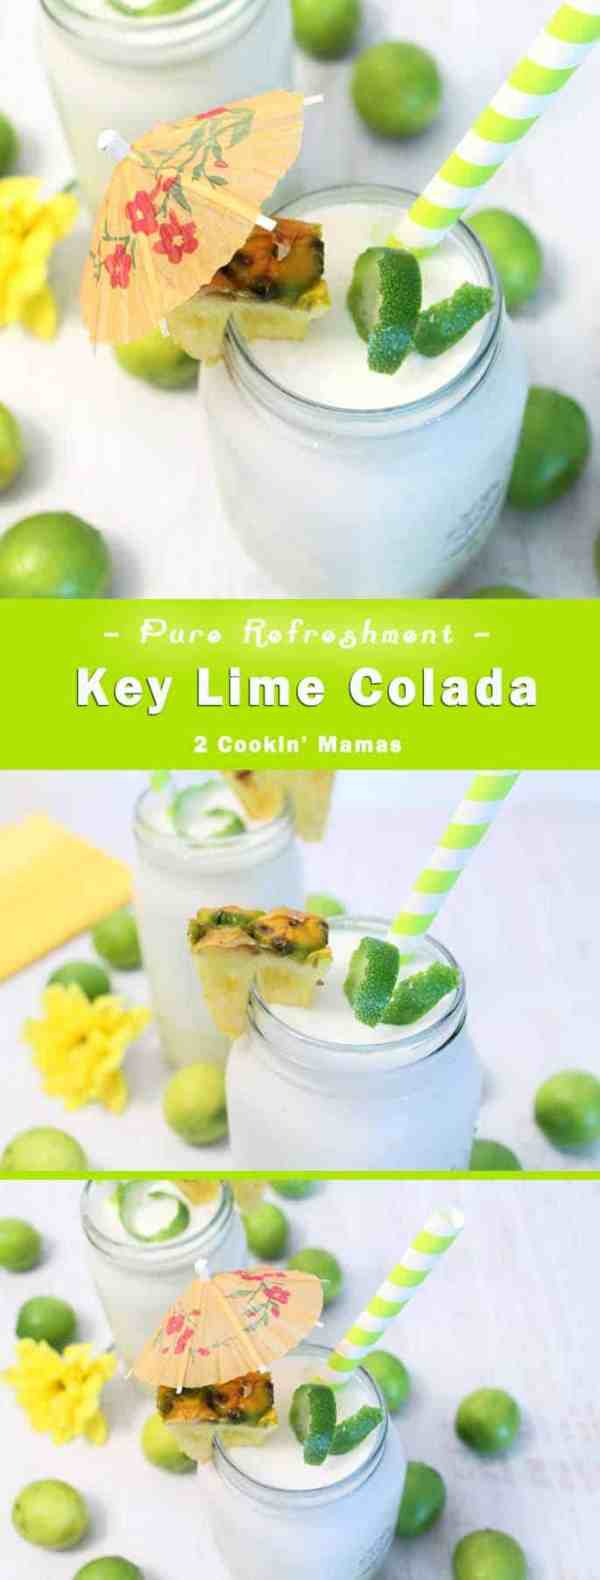 Key Lime Colada pin bottom | 2 Cookin Mamas A refreshing frozen cocktail with the taste of the Florida Keys. Key limes lend a tartness to the creamy coconut base with a twist of orange and the sweetness of pineapple. Vacation anyone? #recipe #cocktail